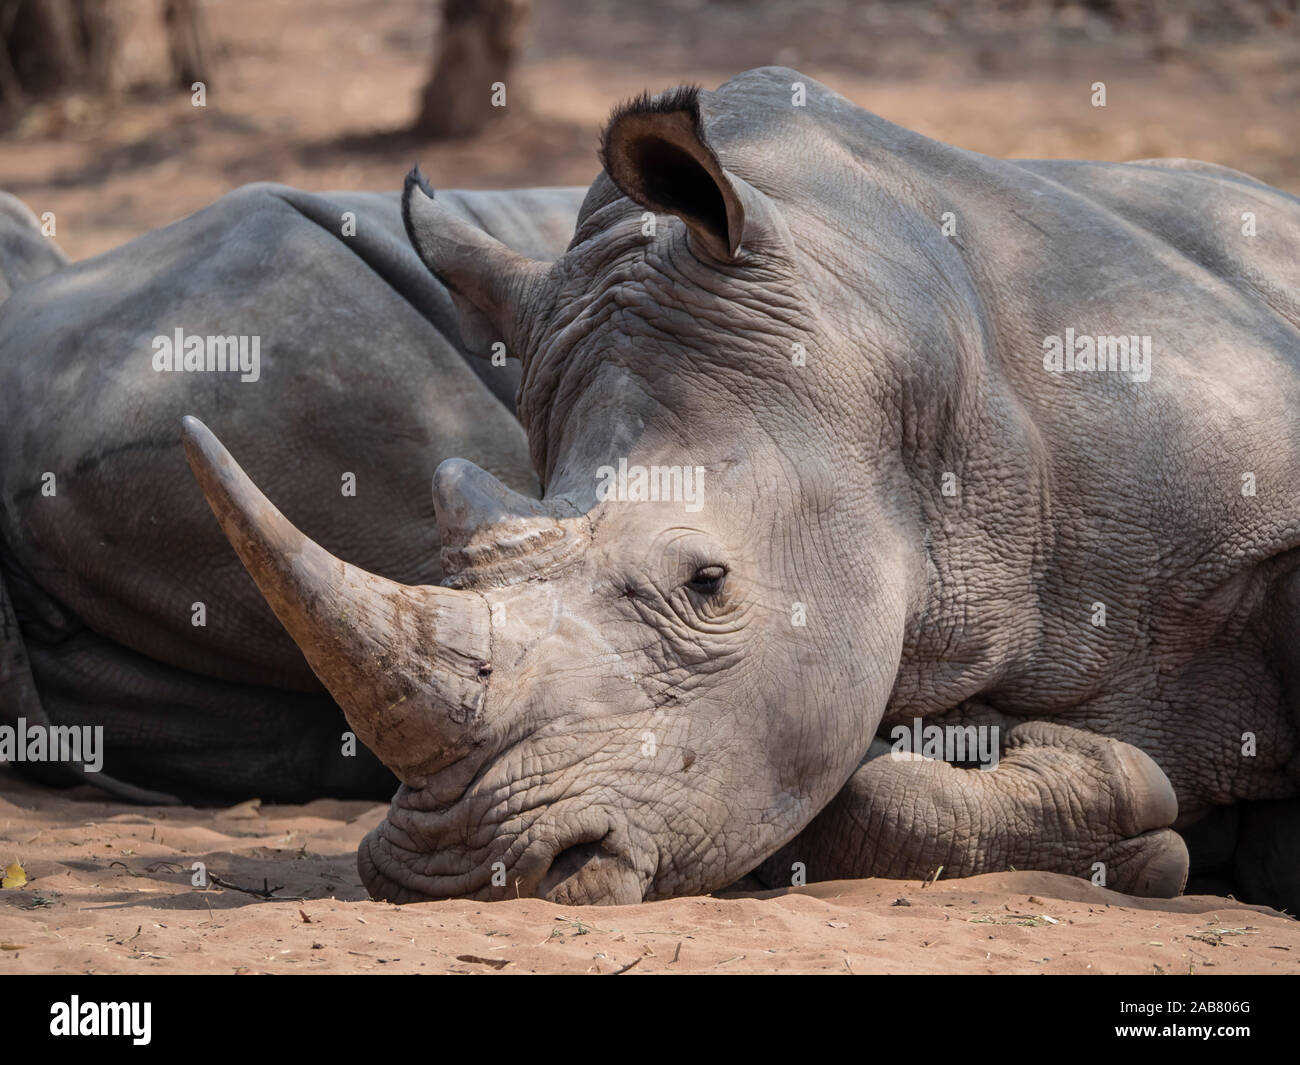 An adult southern white rhinoceros (Ceratotherium simum simum), guarded in Mosi-oa-Tunya National Park, Zambia, Africa Stock Photo